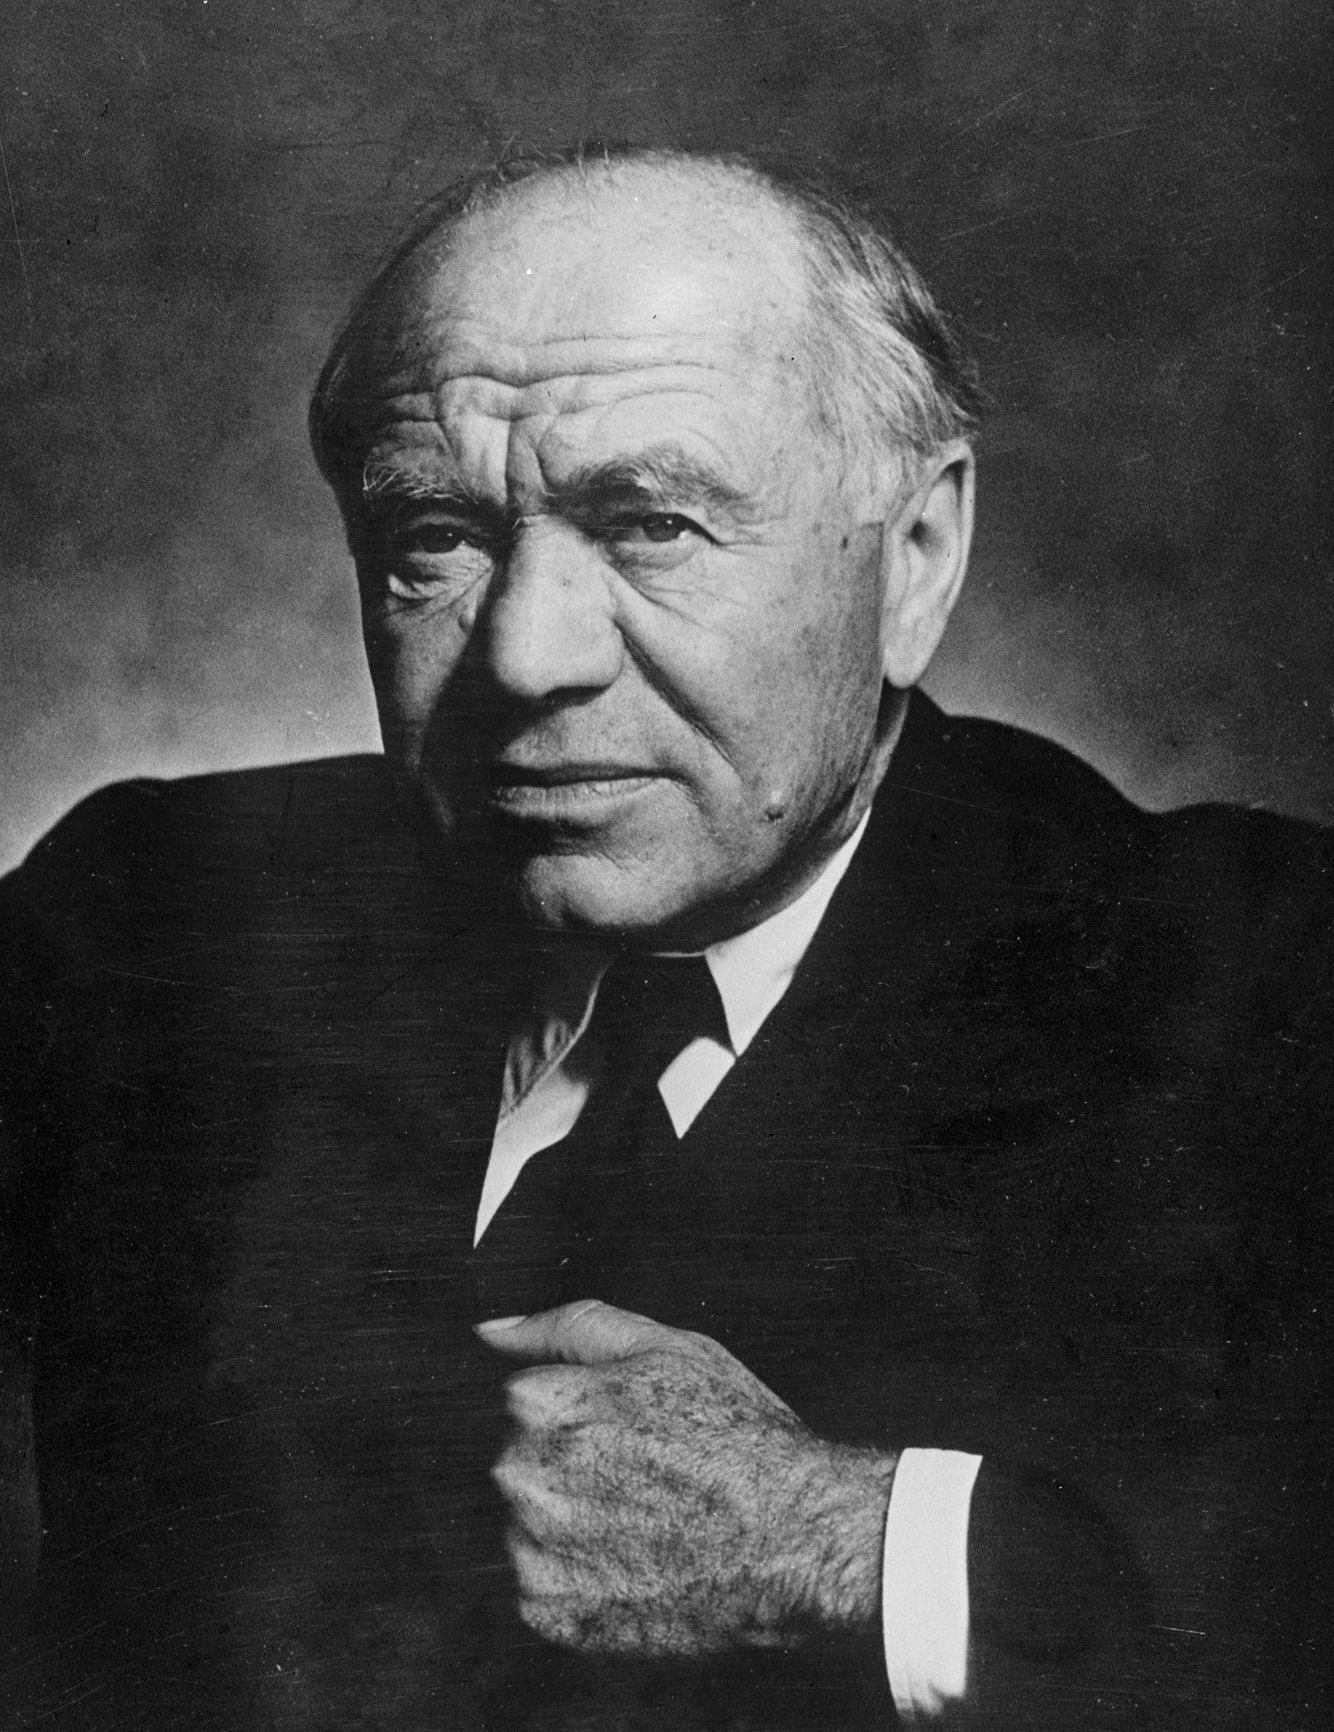 Lord Beaverbrook Net Worth